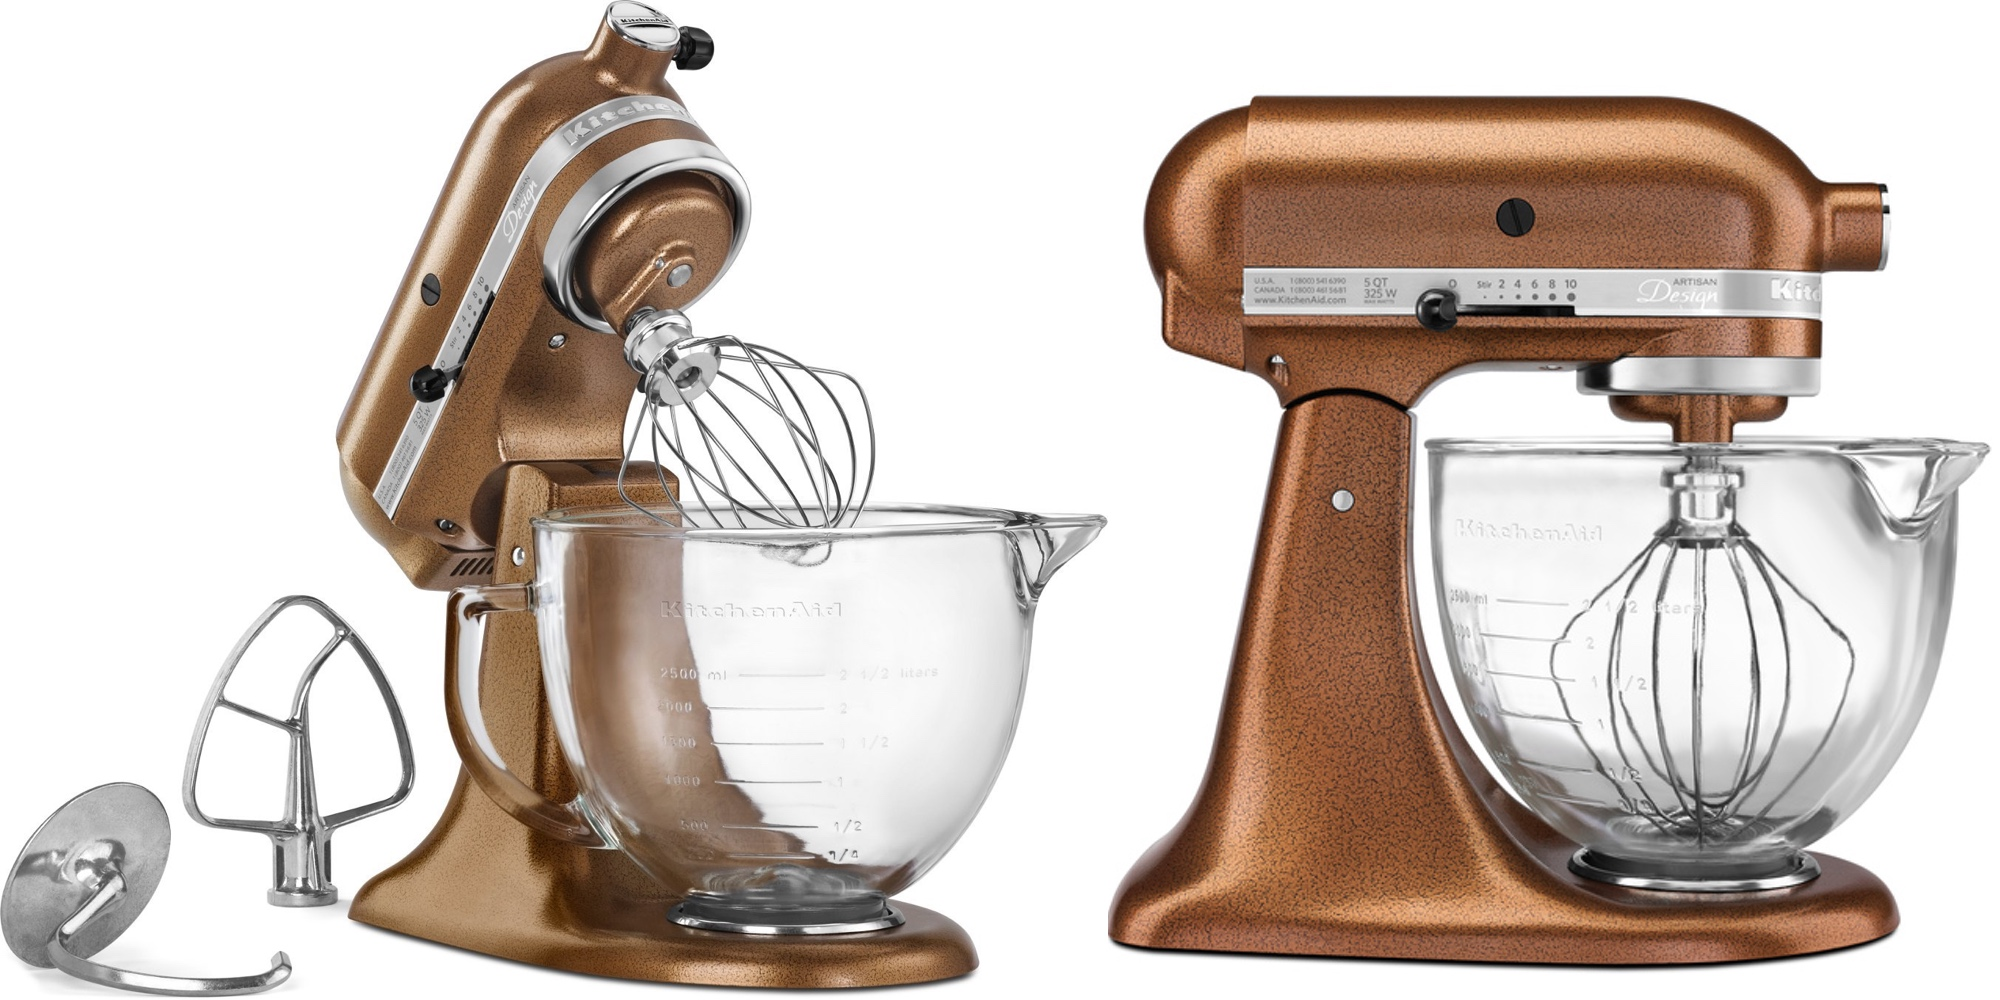 Create a stir in your kitchen with this KitchenAid Classic Plus stand mixer. Watch the product video here. Searching for fresh meal ideas? Discover great KitchenAid recipes here.. Gift Givers: This item ships in its original packaging. If intended as a gift, the packaging may reveal the contents.